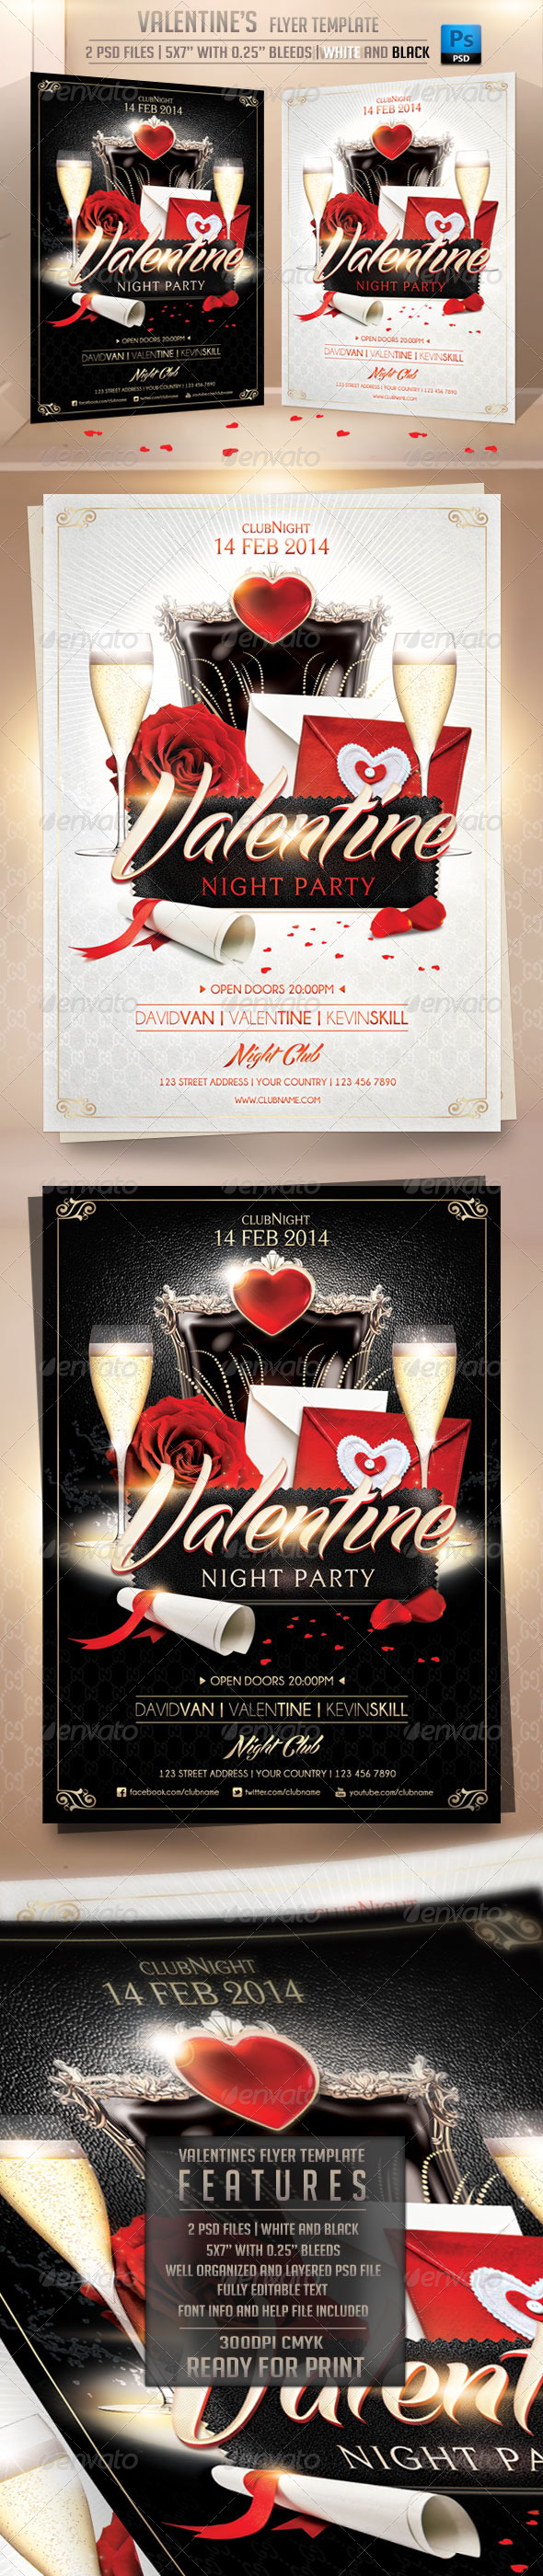 Valentines Flyer Template - Flyers Print Templates